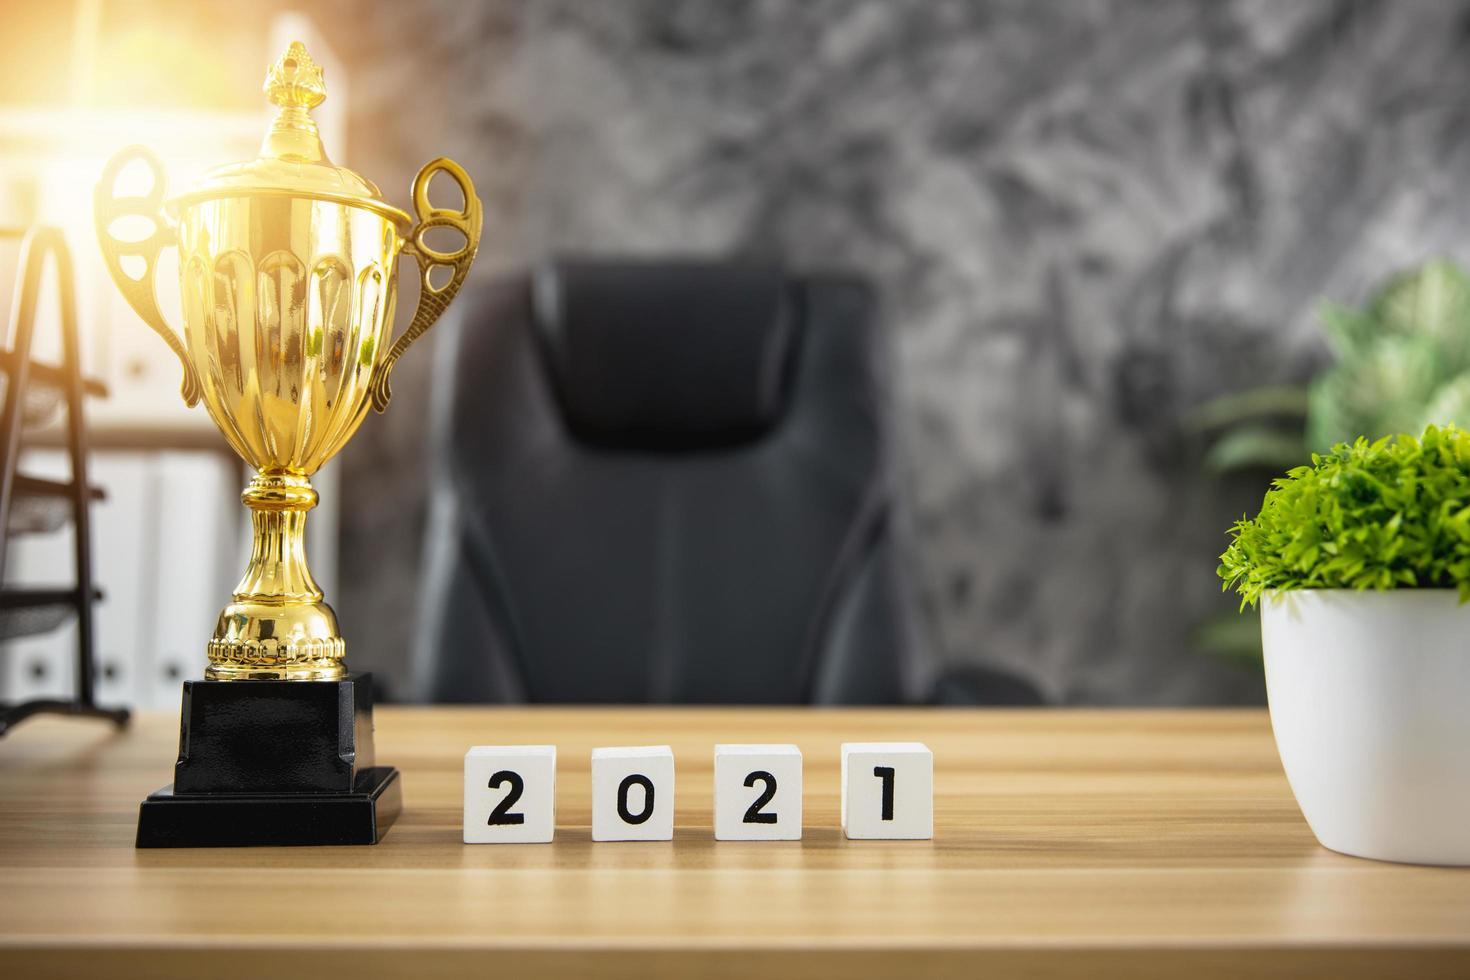 The year 2021 with a trophy photo